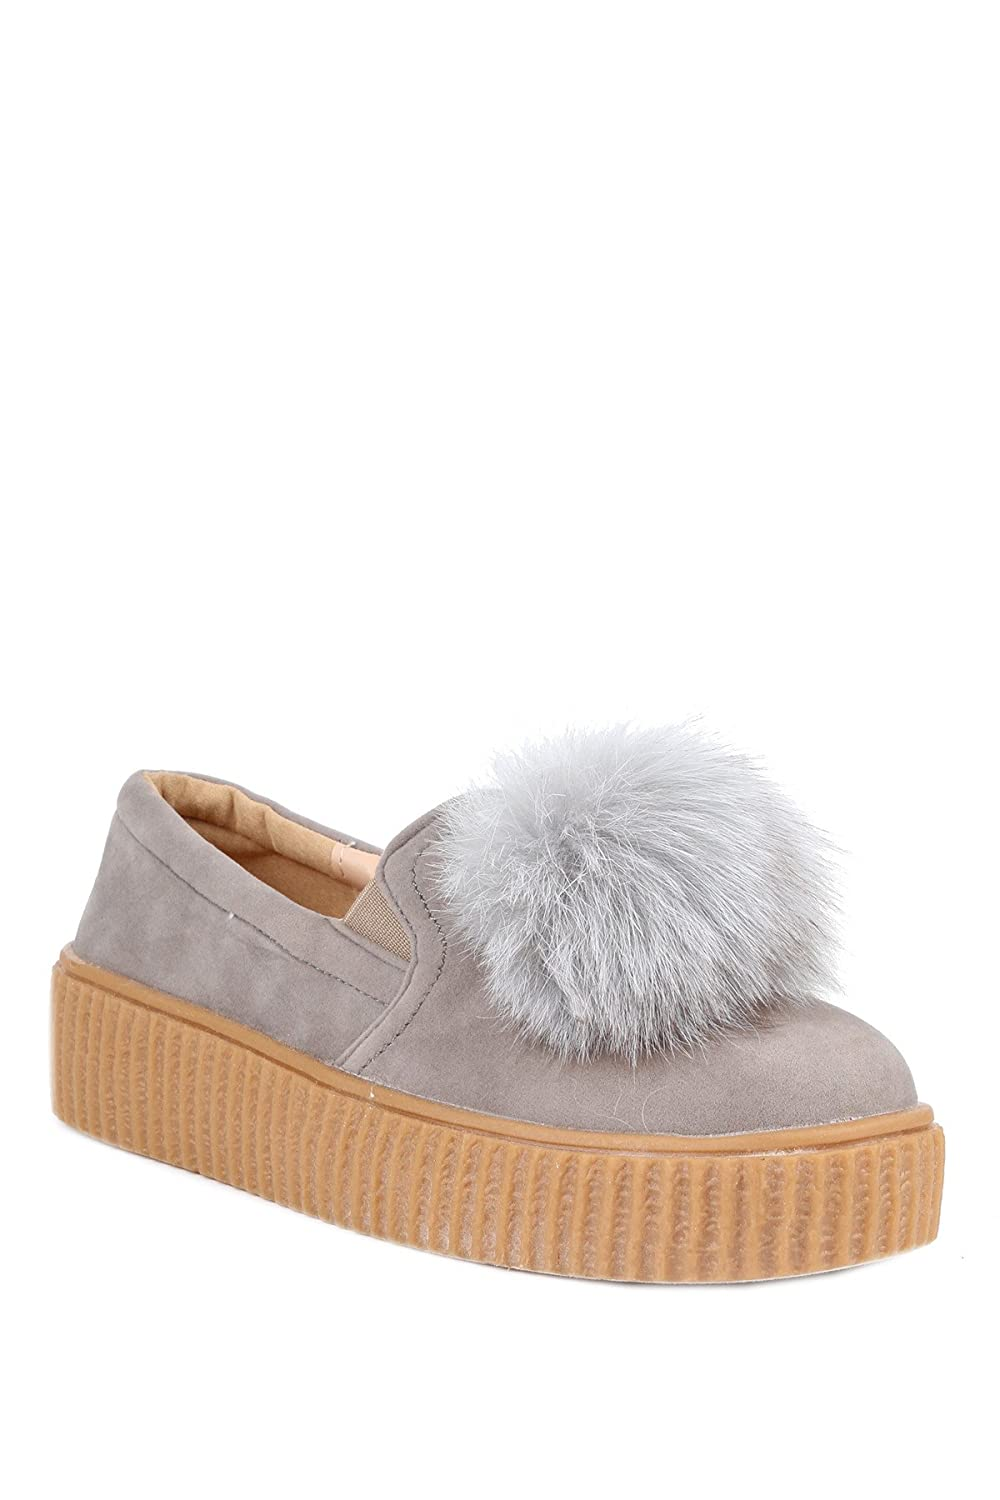 ae493ef03 Amazon.com | Hadari Women's Faux Fur Pom Slip On Sneakers | Fashion Sneakers